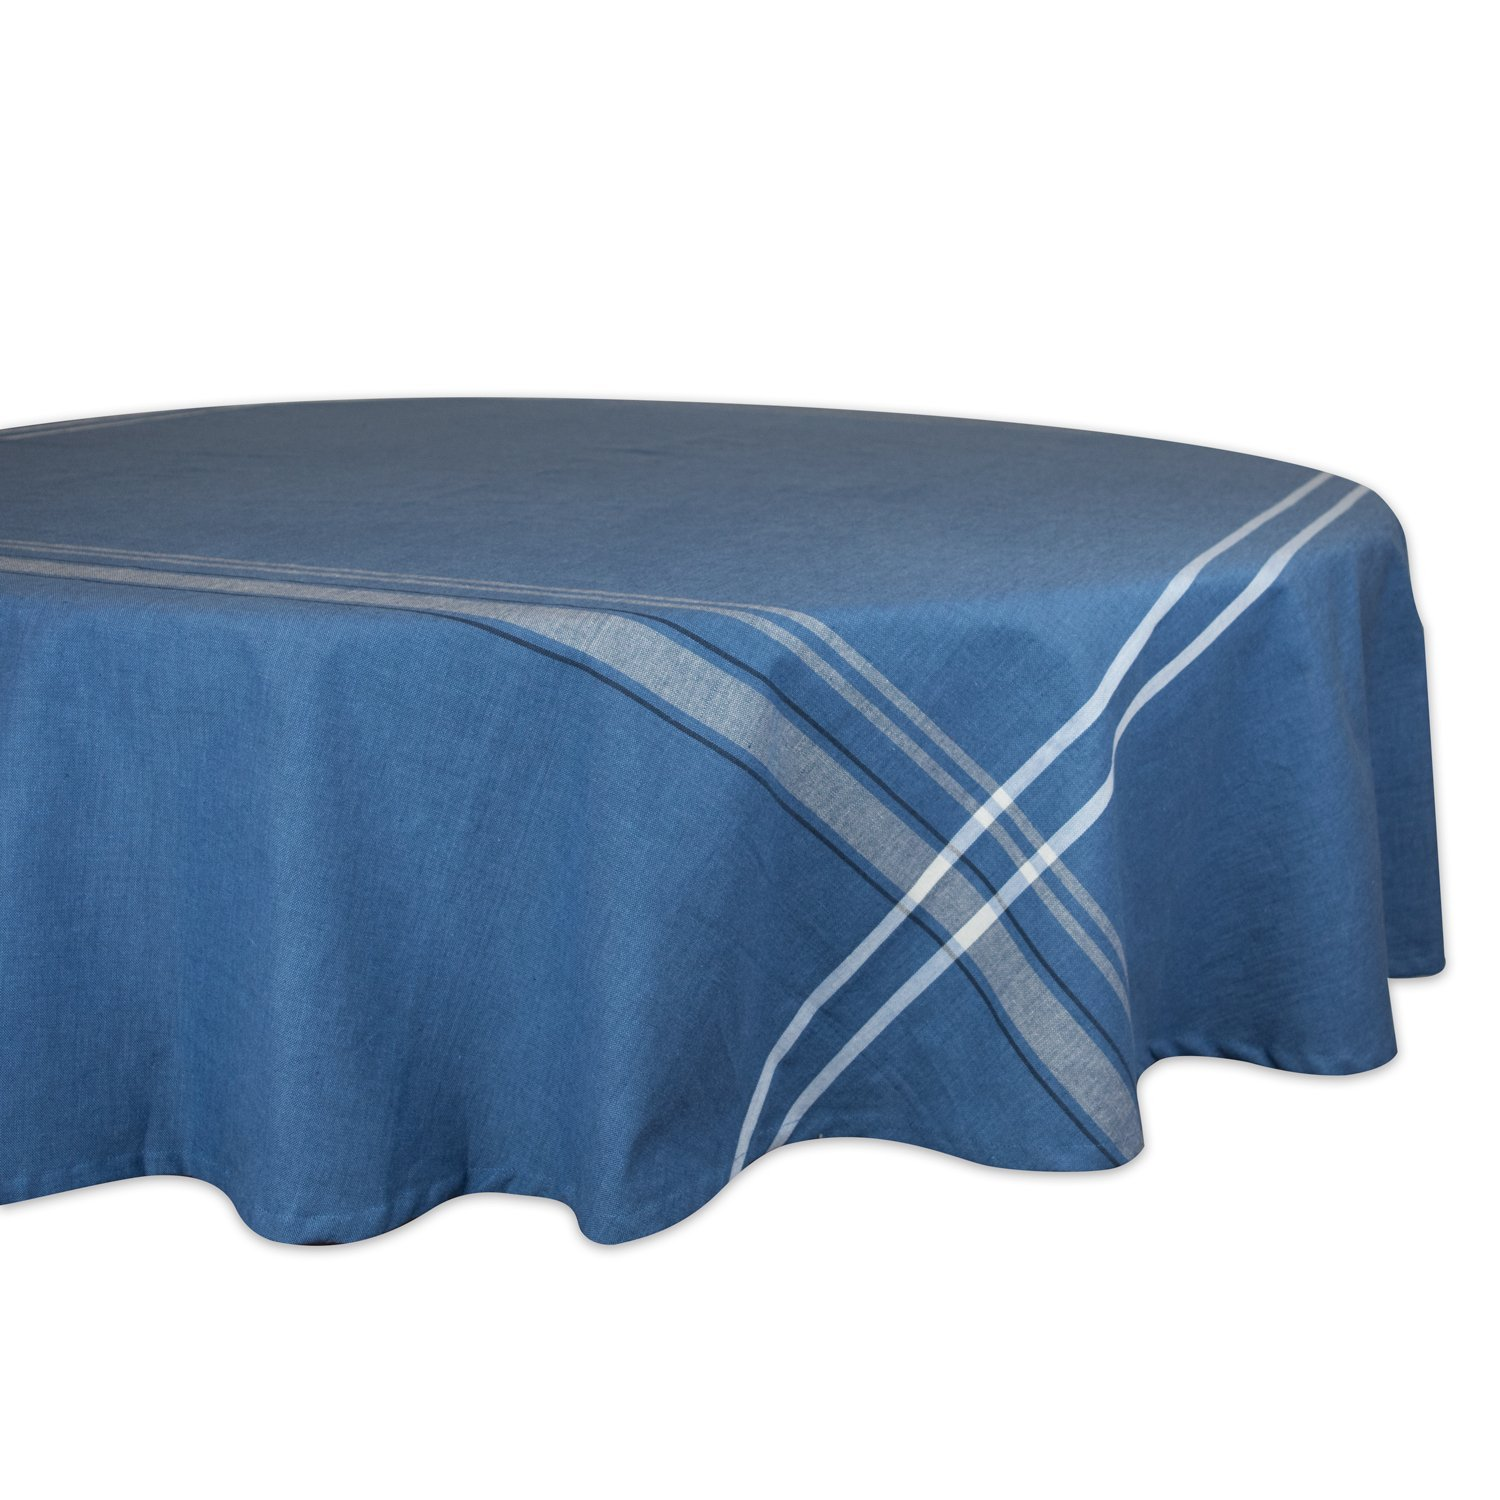 dii cotton machine washable everyday french round accent tablecloth stripe kitchen for dinner parties summer outdoor nics seats ikea living room furniture pier one imports dining